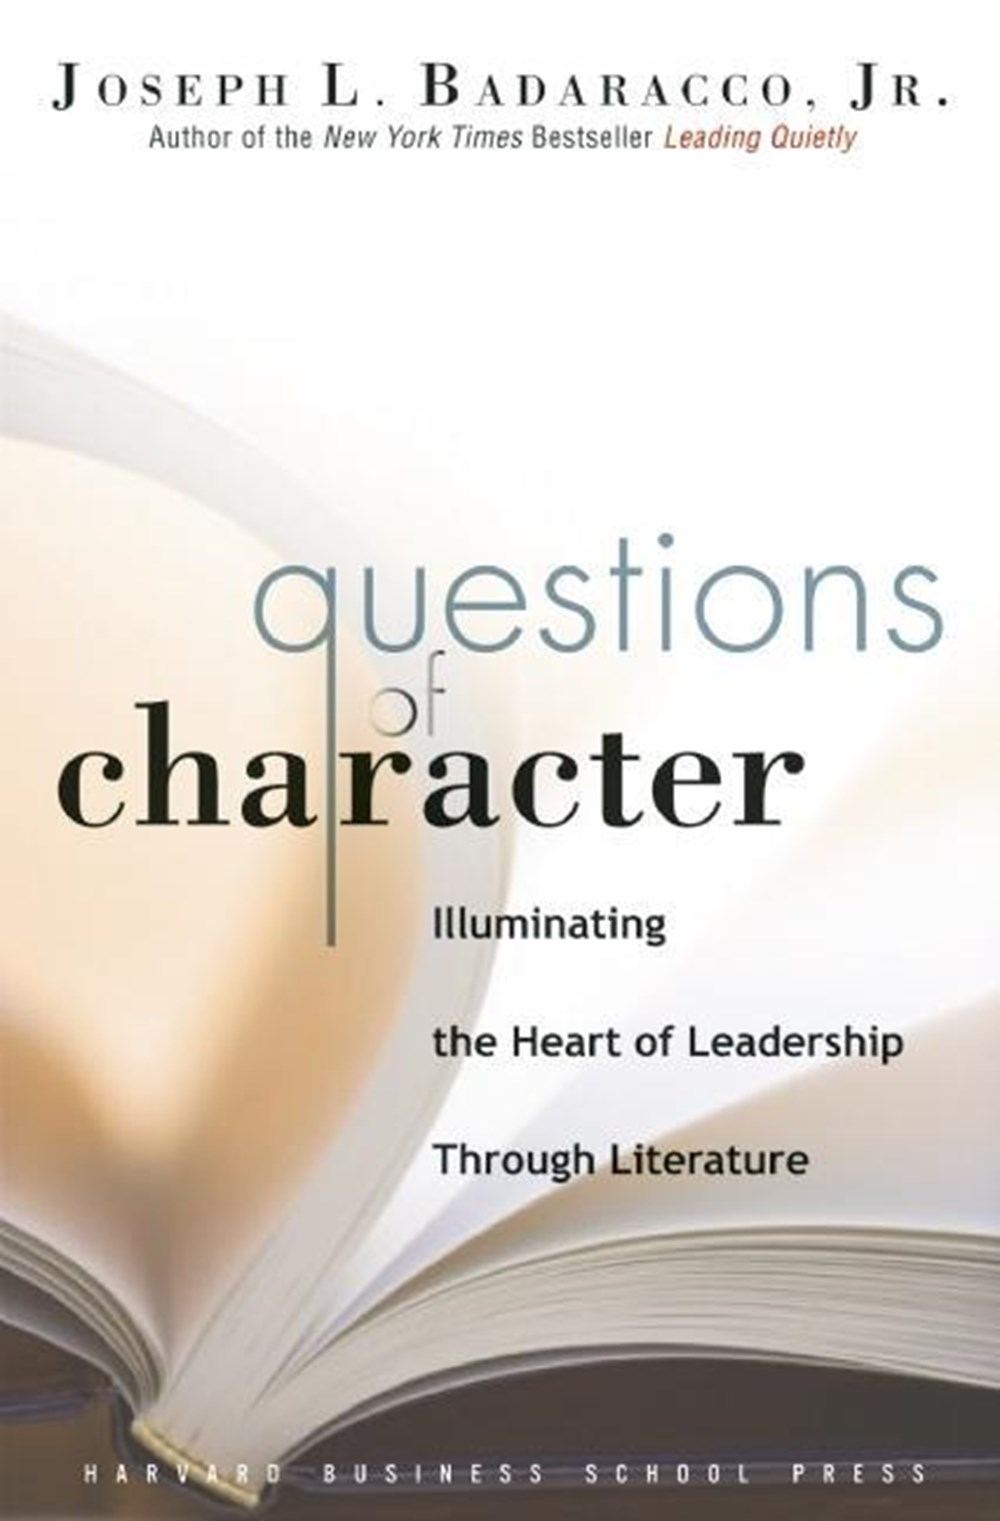 Questions of Character Illuminating the Heart of Leadership Through Literature